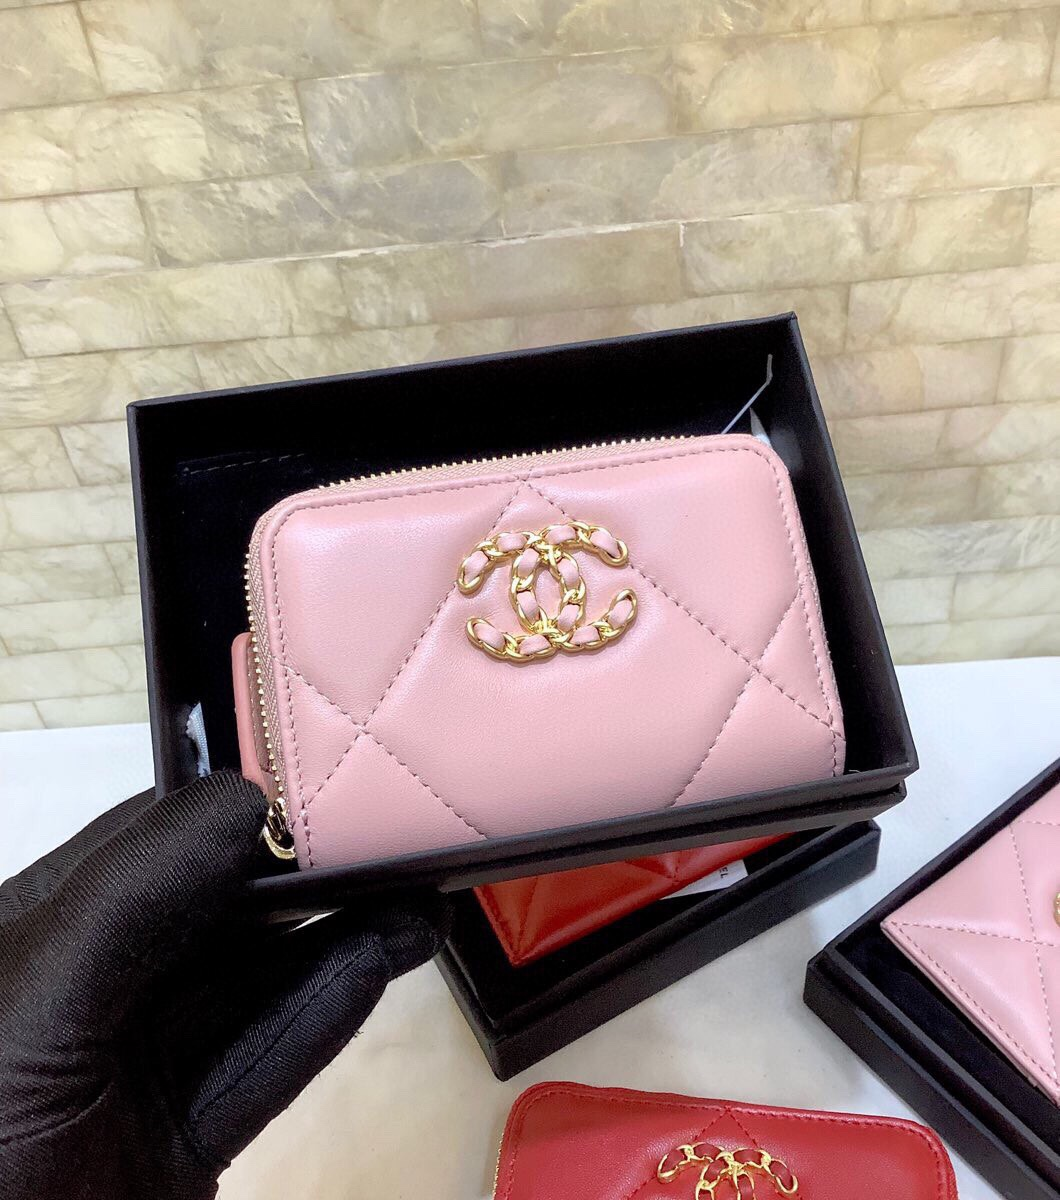 Replica Chanel 19 Chanel Short Wallet Pink